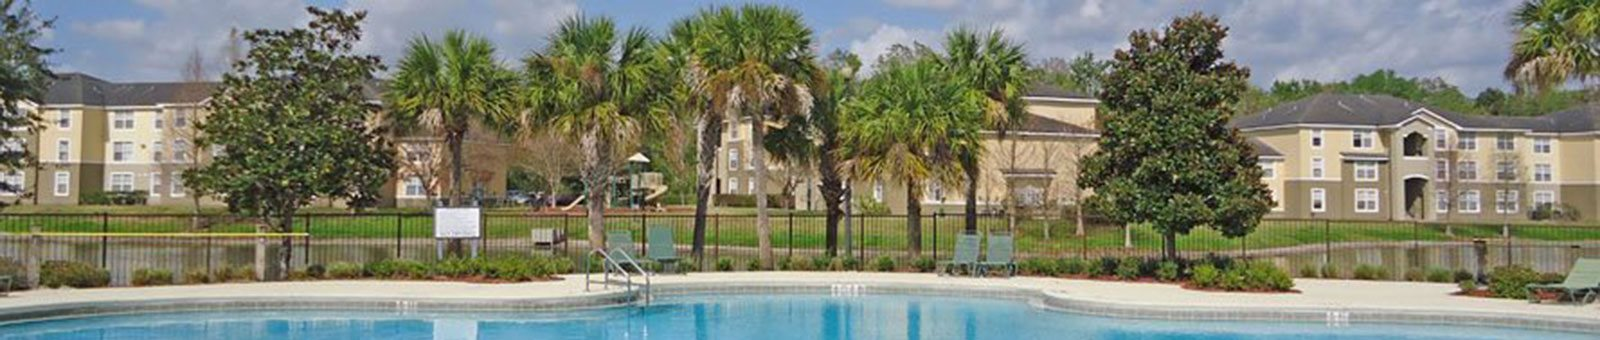 Outdoor swimming pool_Logan Heights Sanford, FL